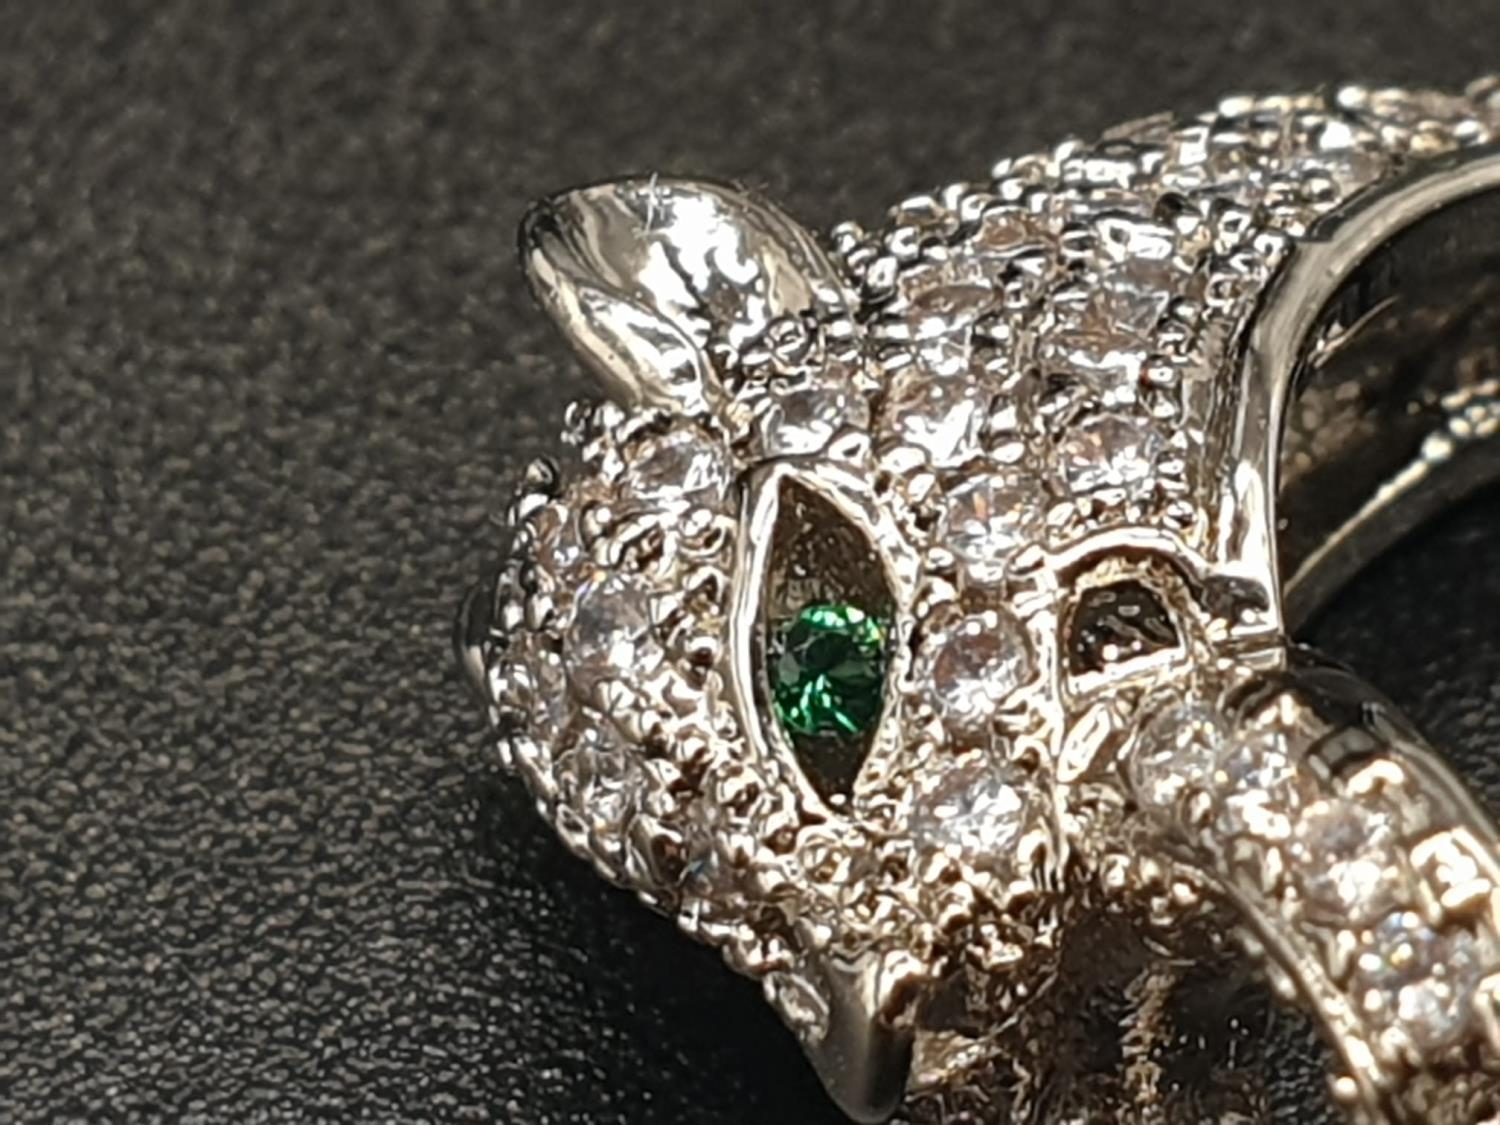 A white metal (untested) Cartier Panther style bracelet and earrings set In a presentation box. Ring - Image 14 of 15